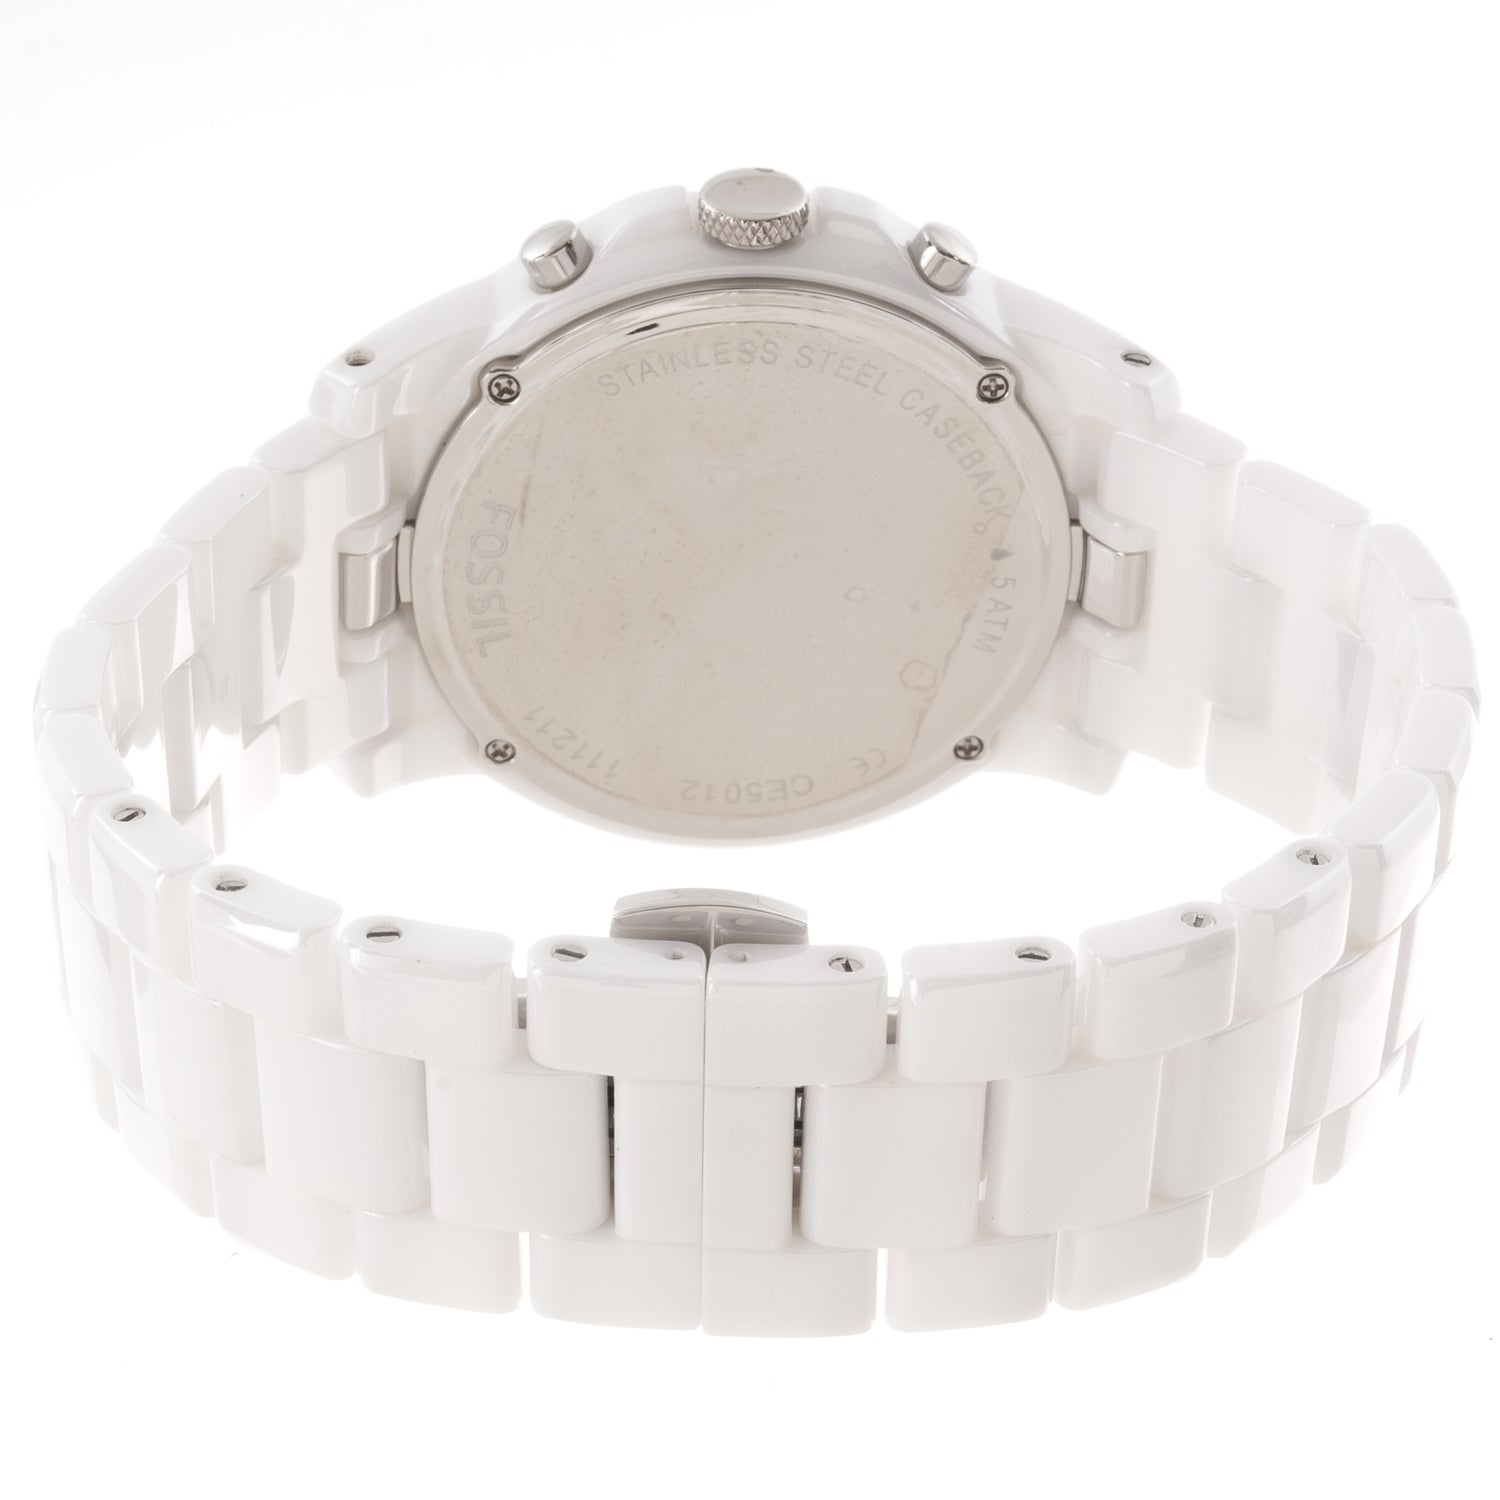 f35bb4cc4 Shop Fossil Men's 'Grant' White Ceramic Chronograph Watch - Free Shipping  Today - Overstock - 7886432